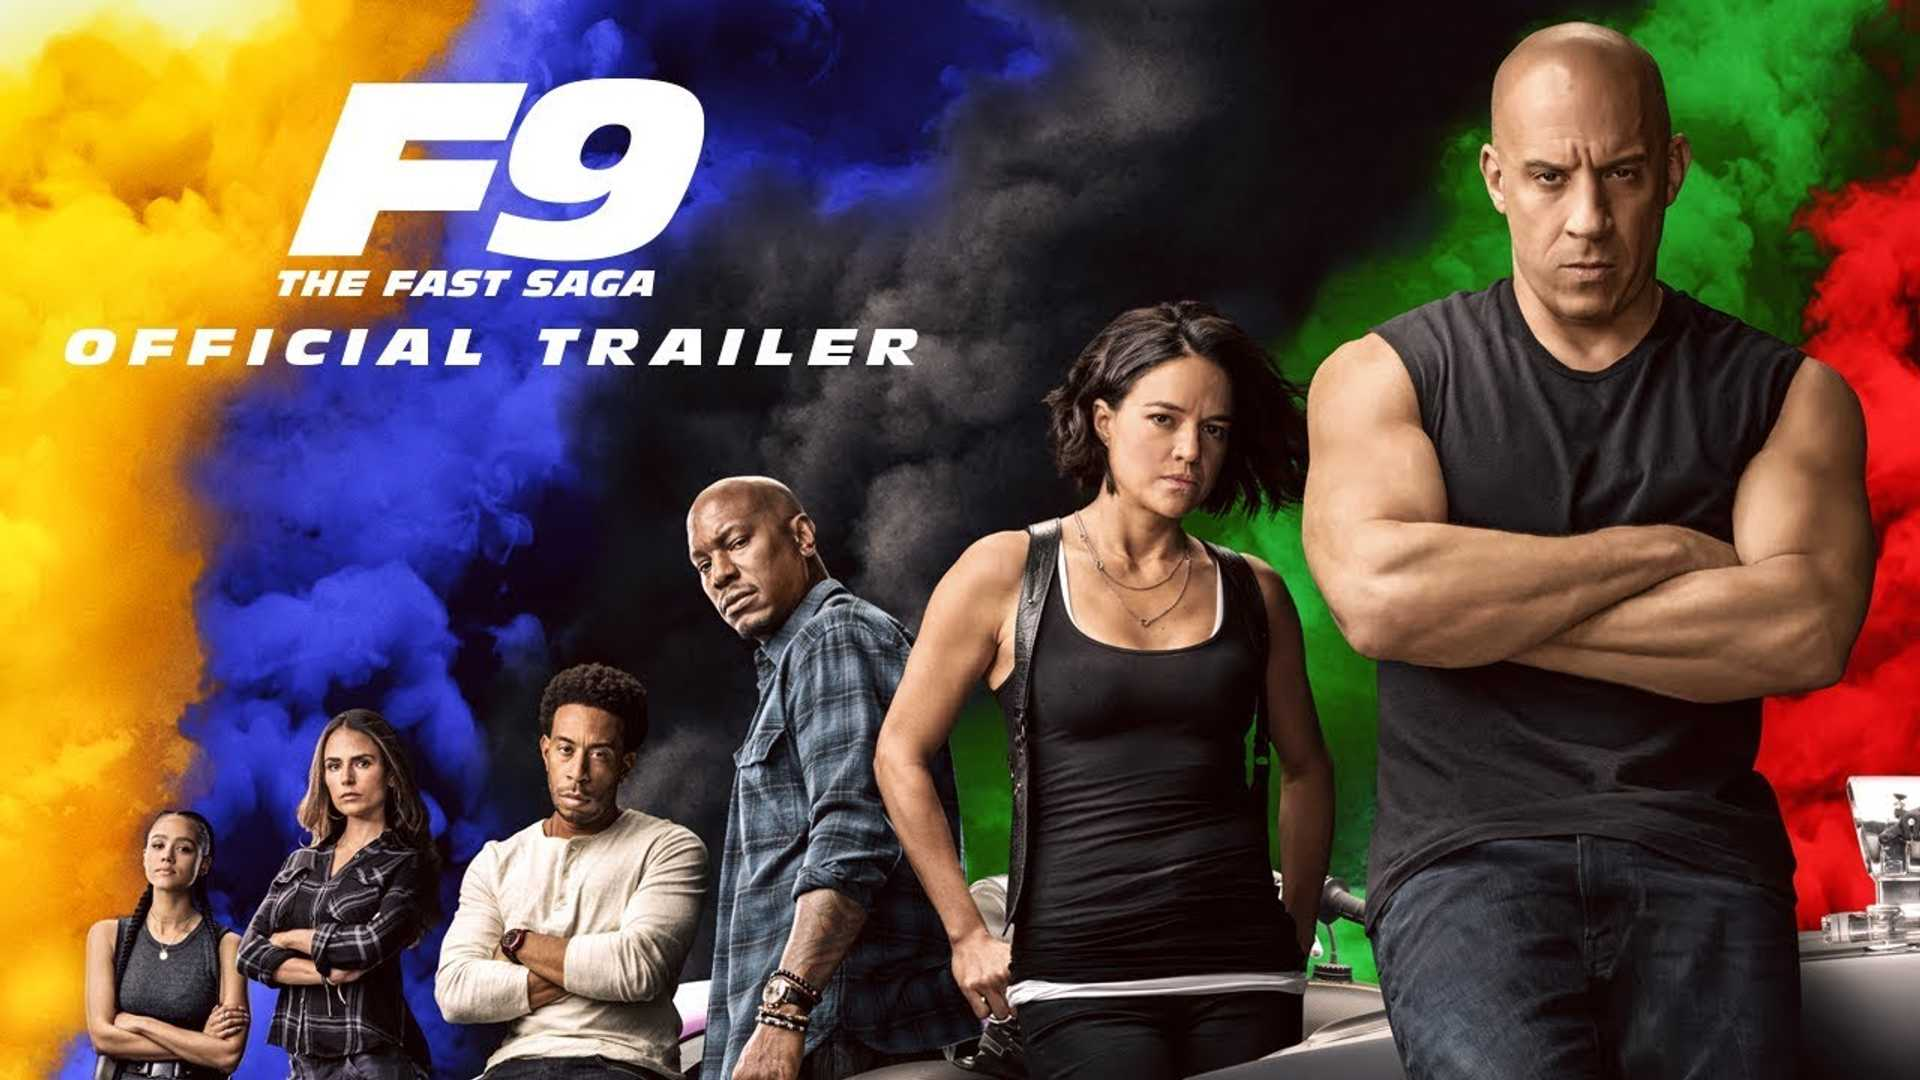 Fast And Furious 9 trailer released